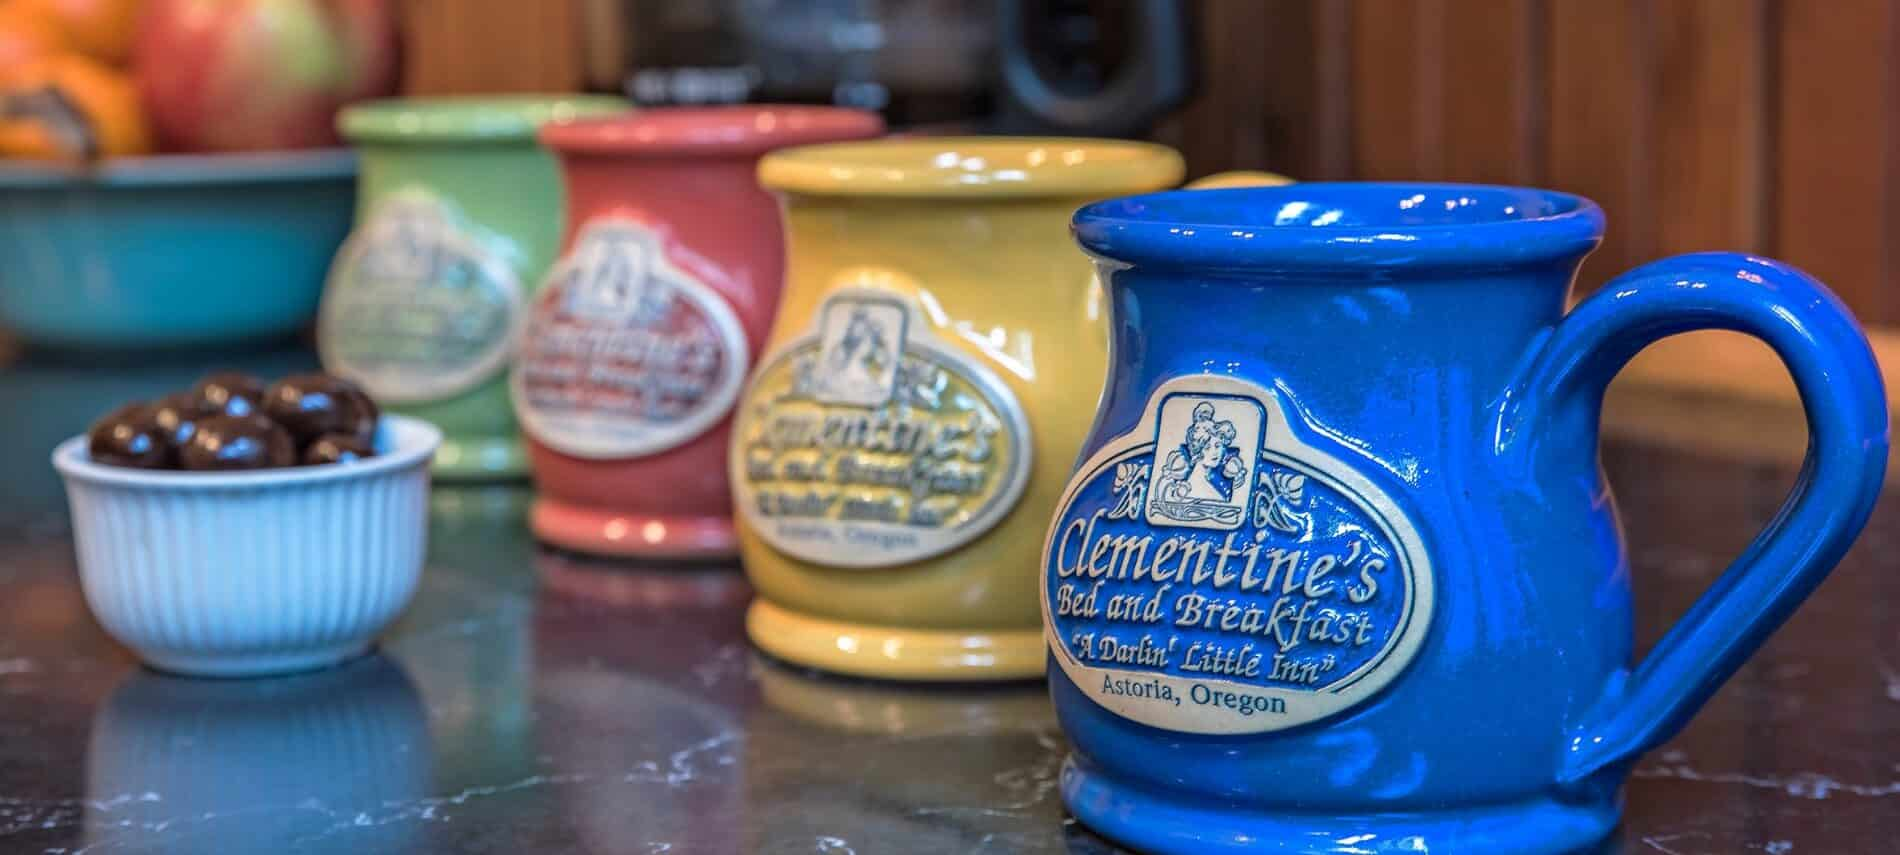 Row of brightly colored stoneware mugs with the Clementine's Bed and Breakfast logo.